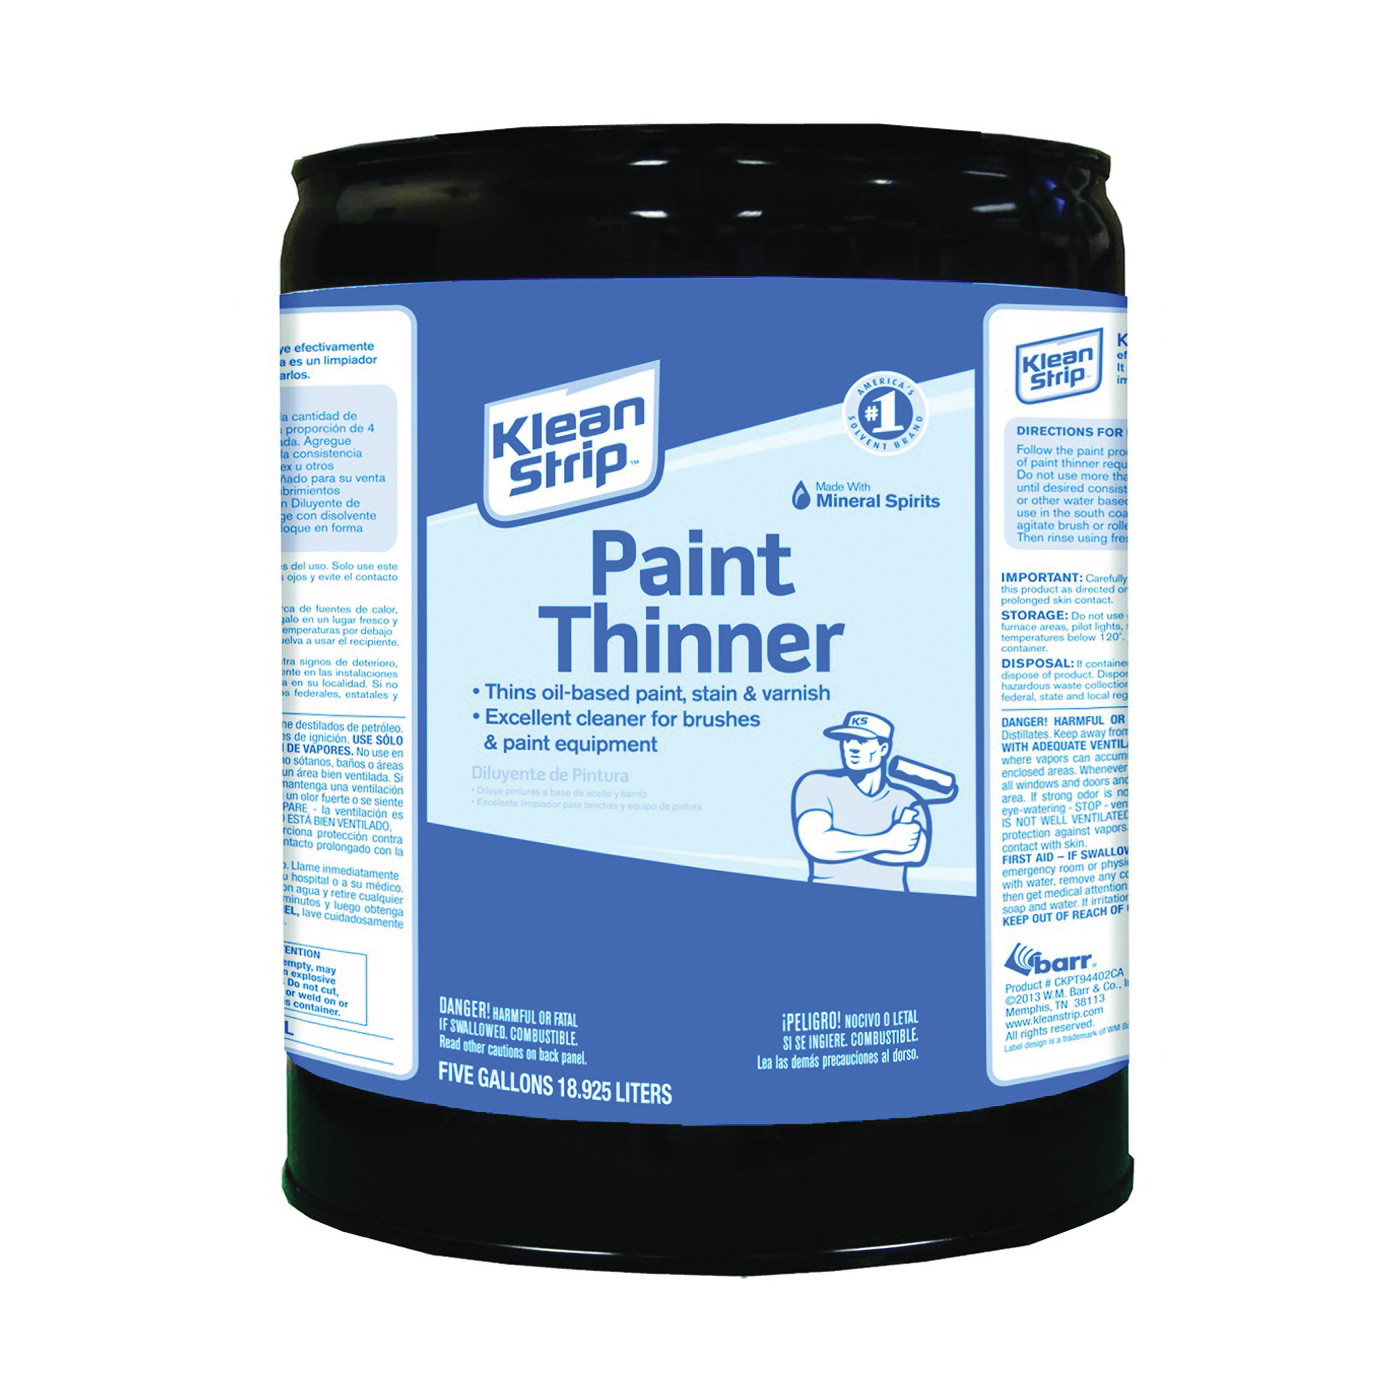 Picture of Klean Strip CKPT94402CA Paint Thinner, Liquid, Aromatic Hydrocarbon, Water White, 5 gal, Can